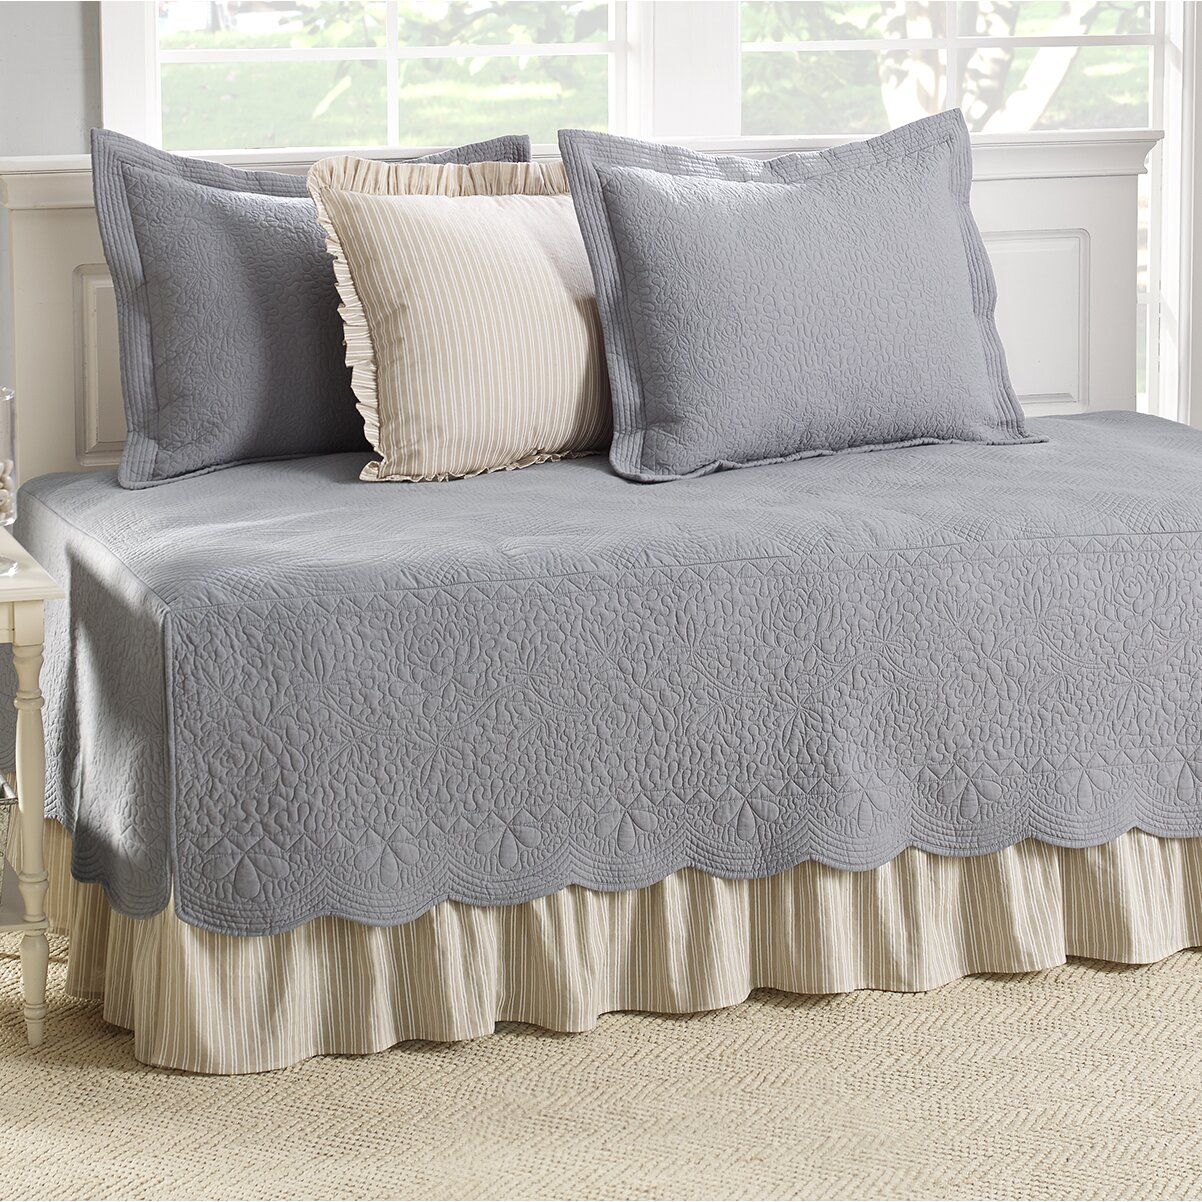 Stone Cottage Trellis 5 Piece Daybed Cover Set Reviews